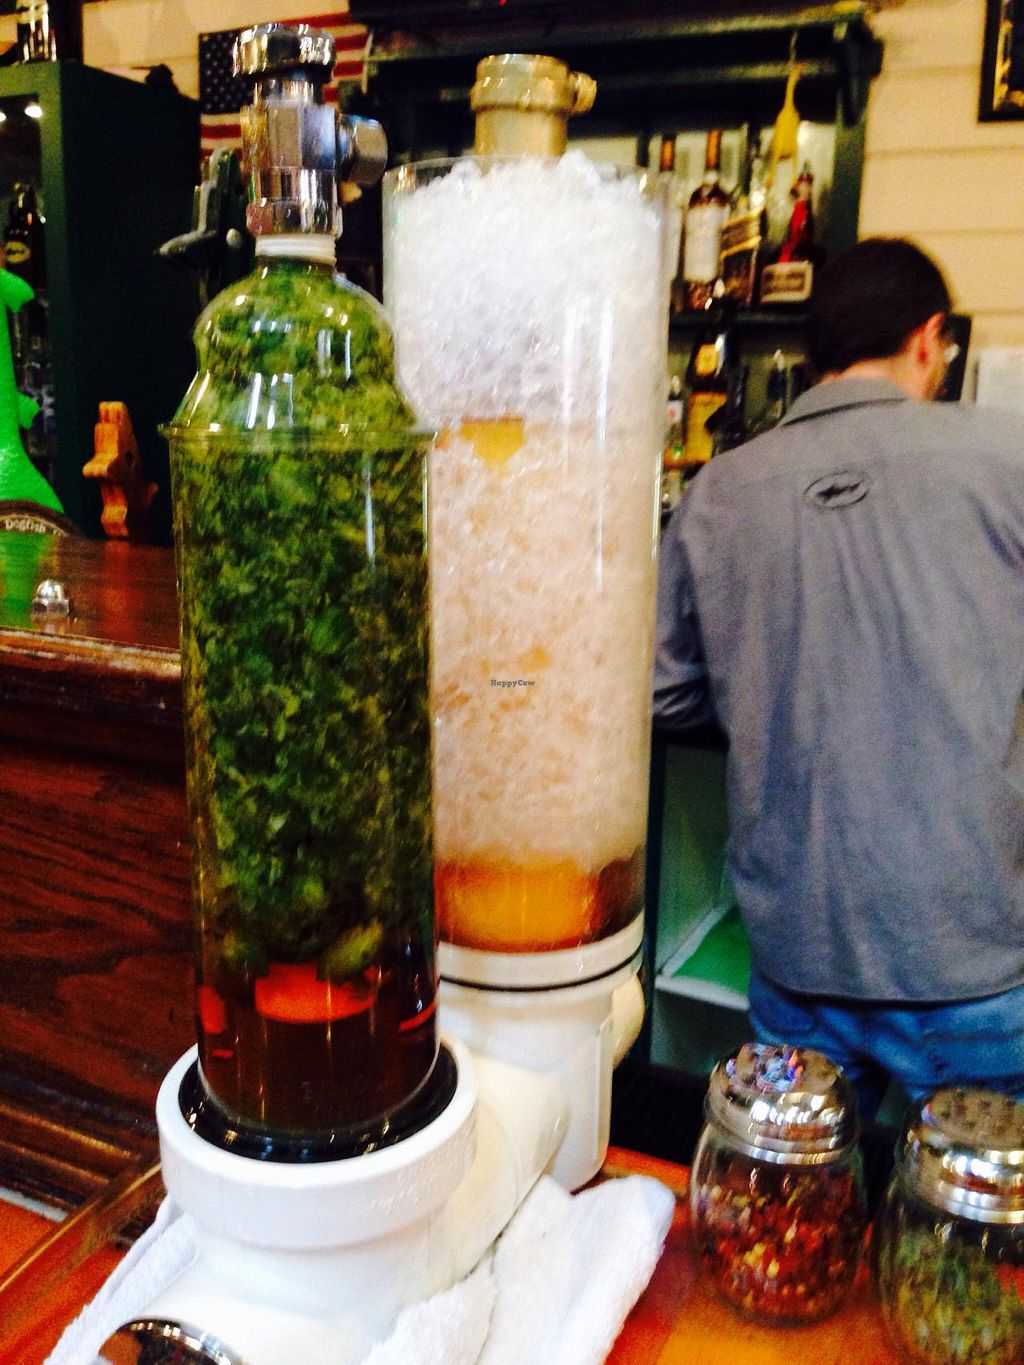 """Photo of Dogfish Head Brewing  by <a href=""""/members/profile/EllieProb"""">EllieProb</a> <br/>Monday & Friday beer goes through a randall for extra flavor. This was 90 minute ipa through cascade hops.  <br/> January 31, 2015  - <a href='/contact/abuse/image/55232/91879'>Report</a>"""